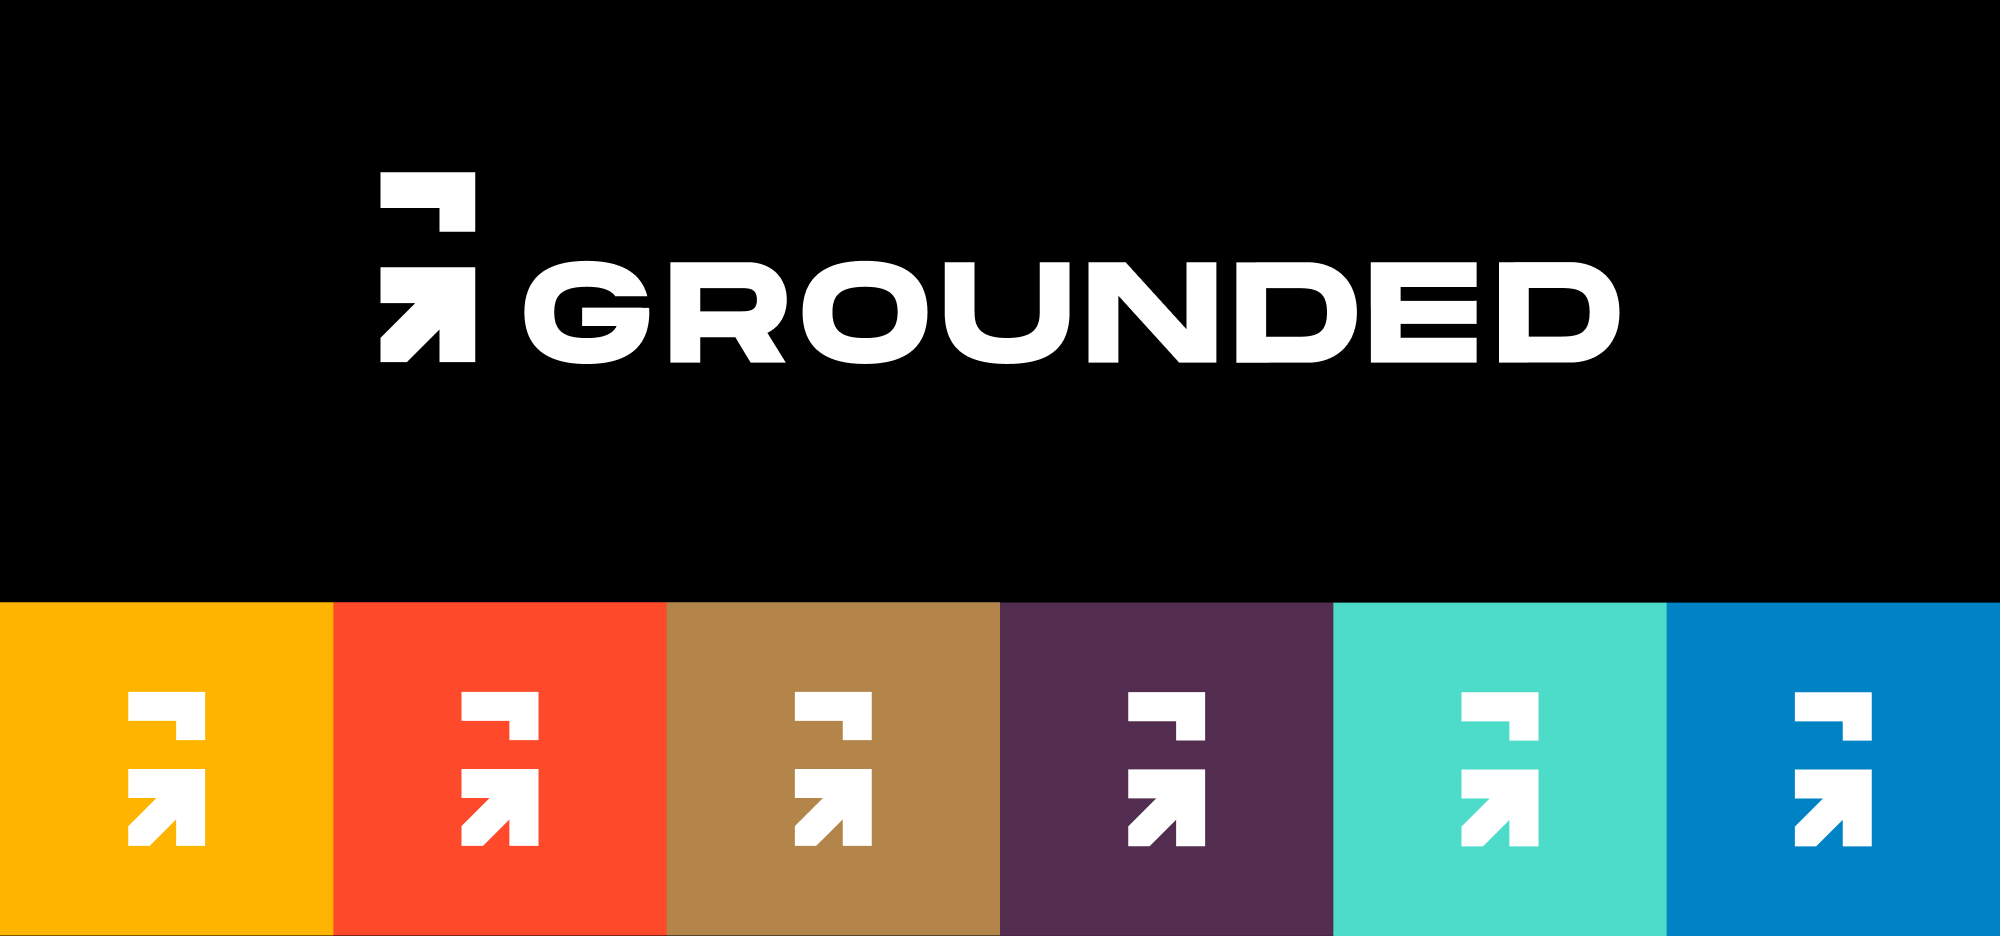 grounded-final_gm